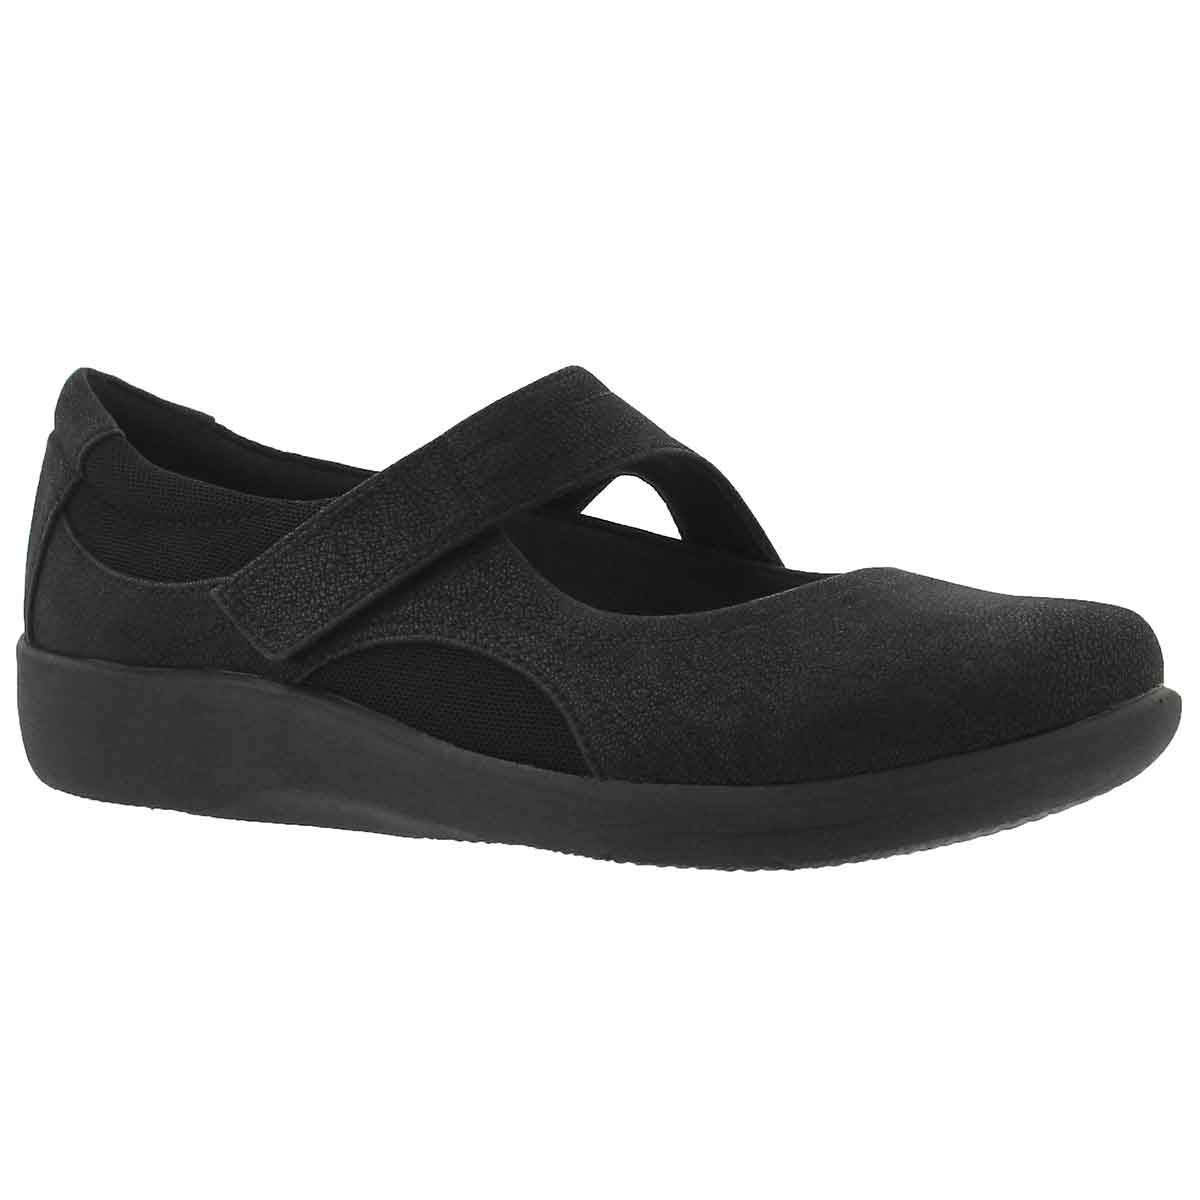 d50b2d327cb Women's SILLIAN BELLA black casual Mary Janes